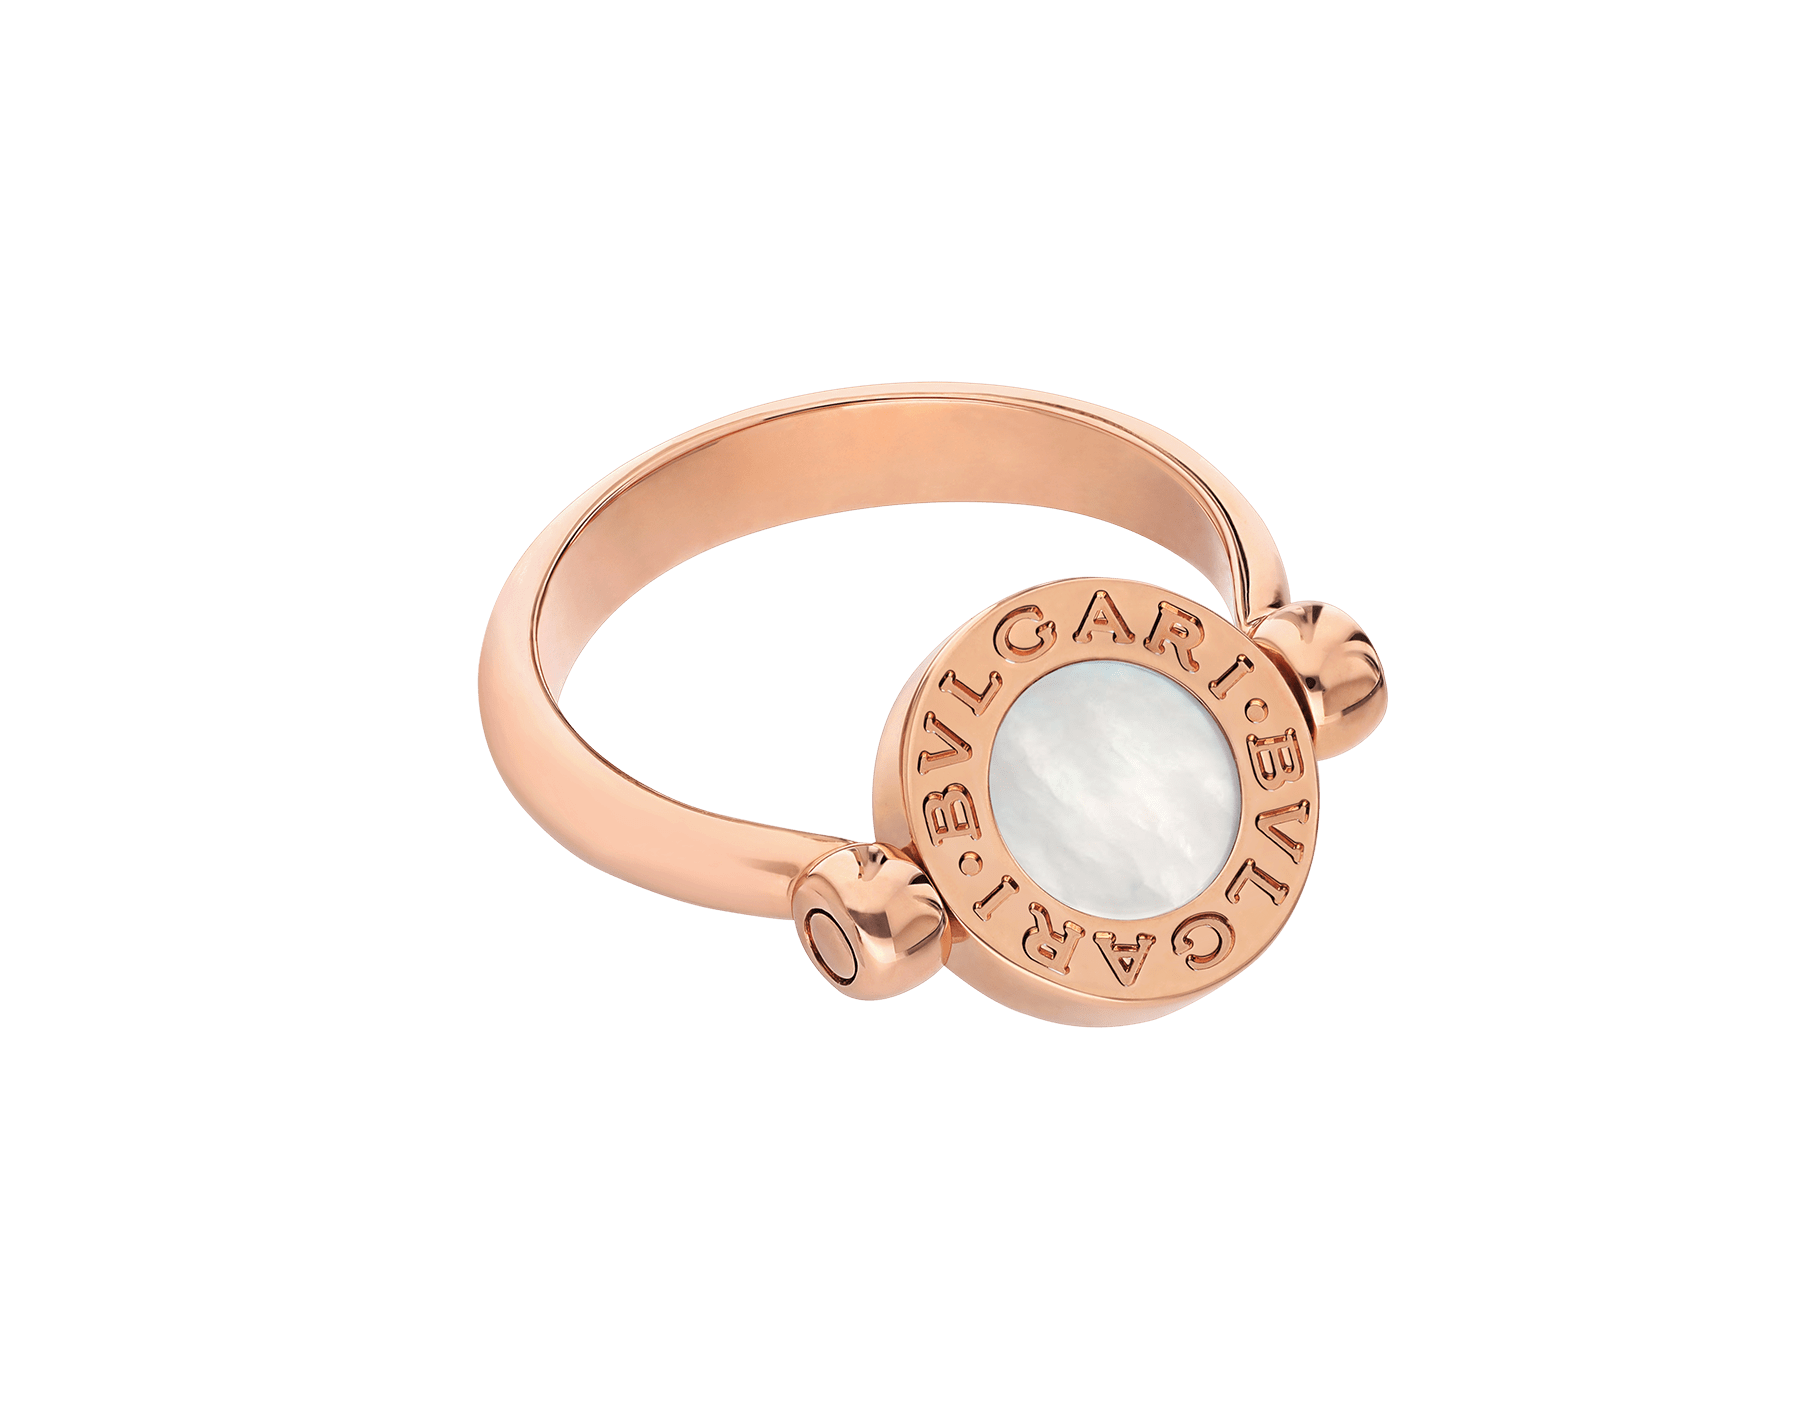 BVLGARI BVLGARI 18 kt rose gold flip ring set with mother-of-pearl and pavé diamonds AN857171 image 4